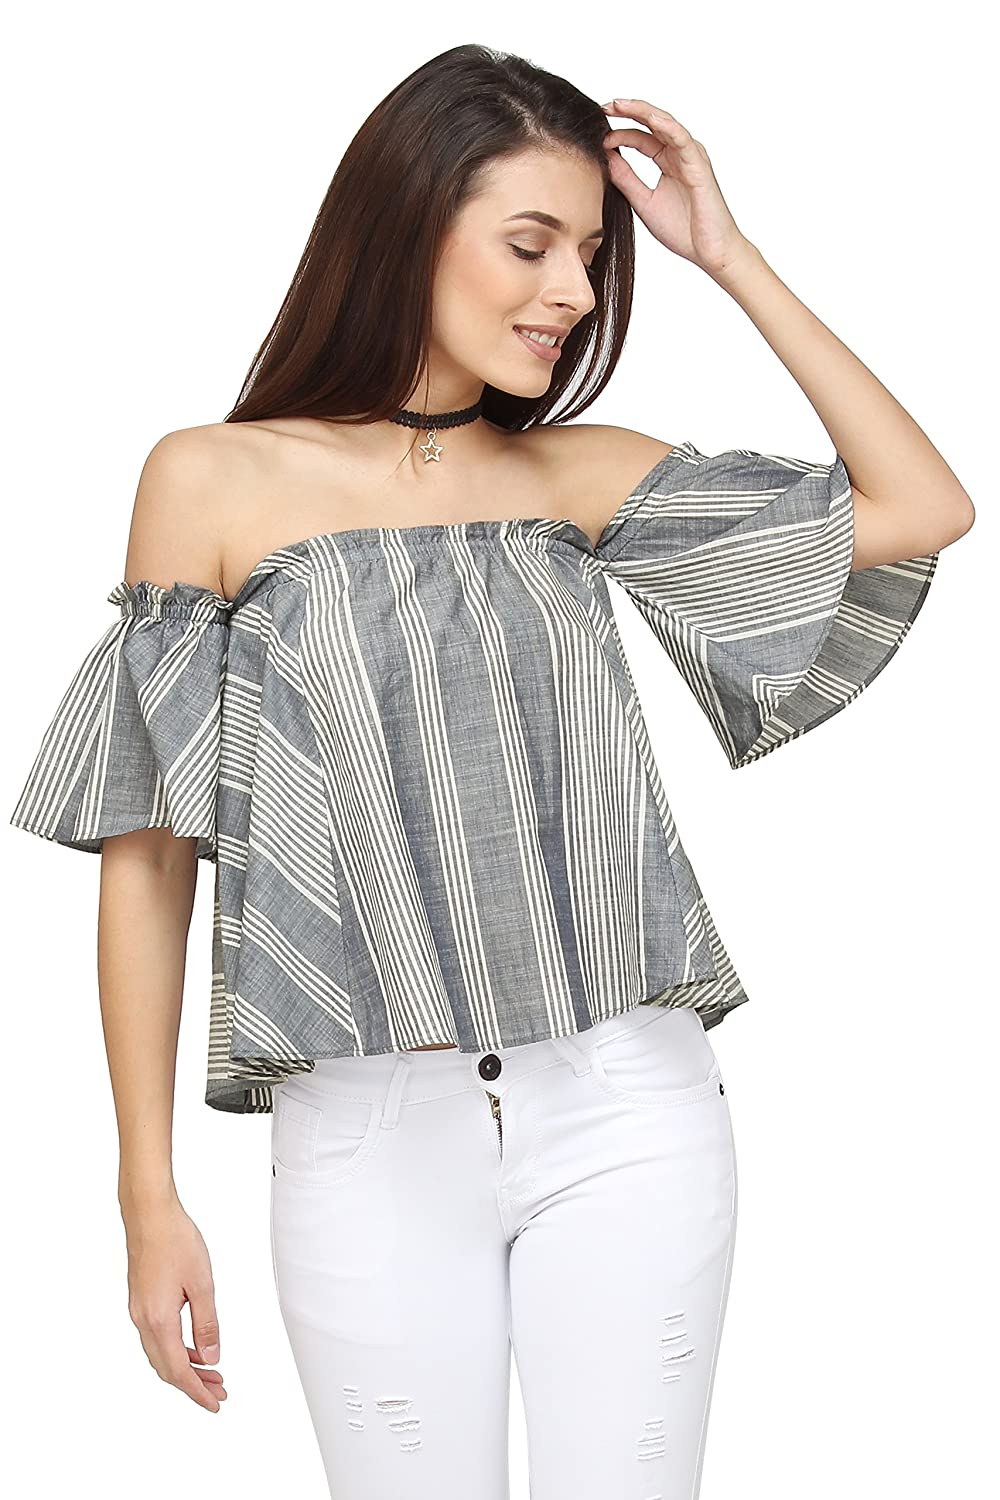 6fa8b1cb811 Design: Blue and White Stripe Cotton Top . Off Shoulder Silhouette with  Short Sleeves... Fabric: Cotton Ocassion: Casual, Daily Wear, Day Party, ...